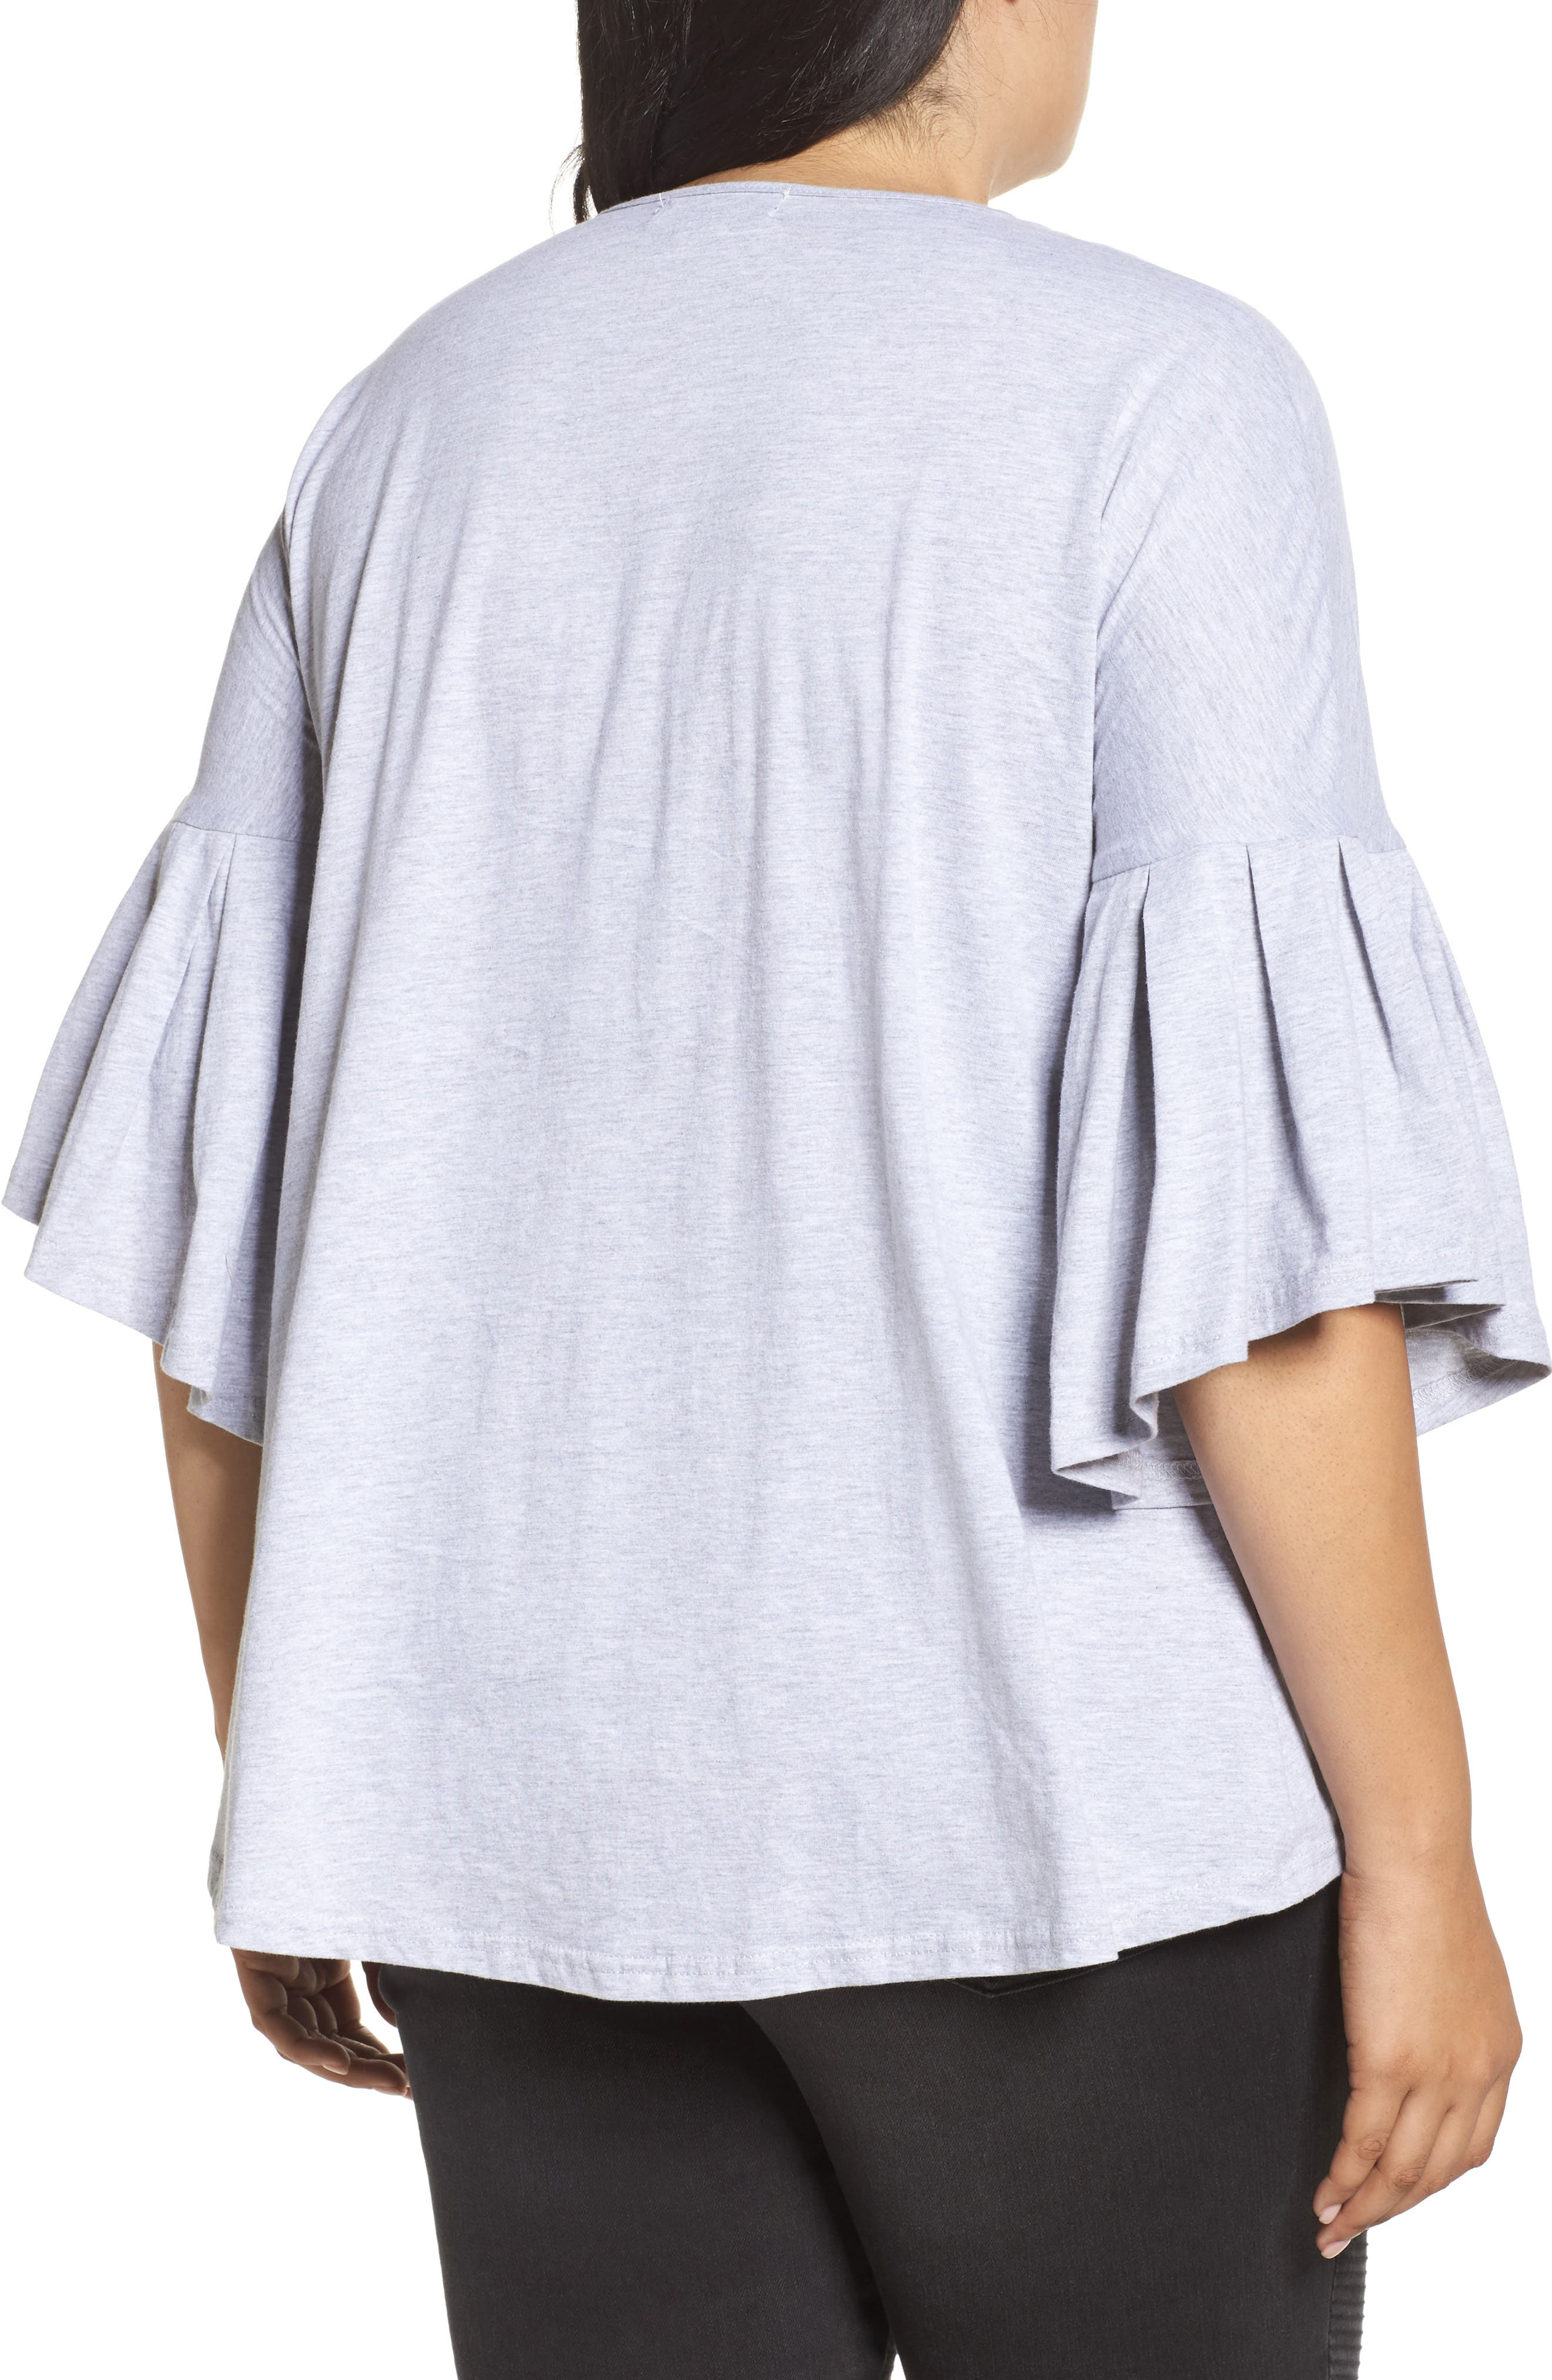 Alternate Image 2  - LOST INK Bell Sleeve Cotton Blouse (Plus Size)